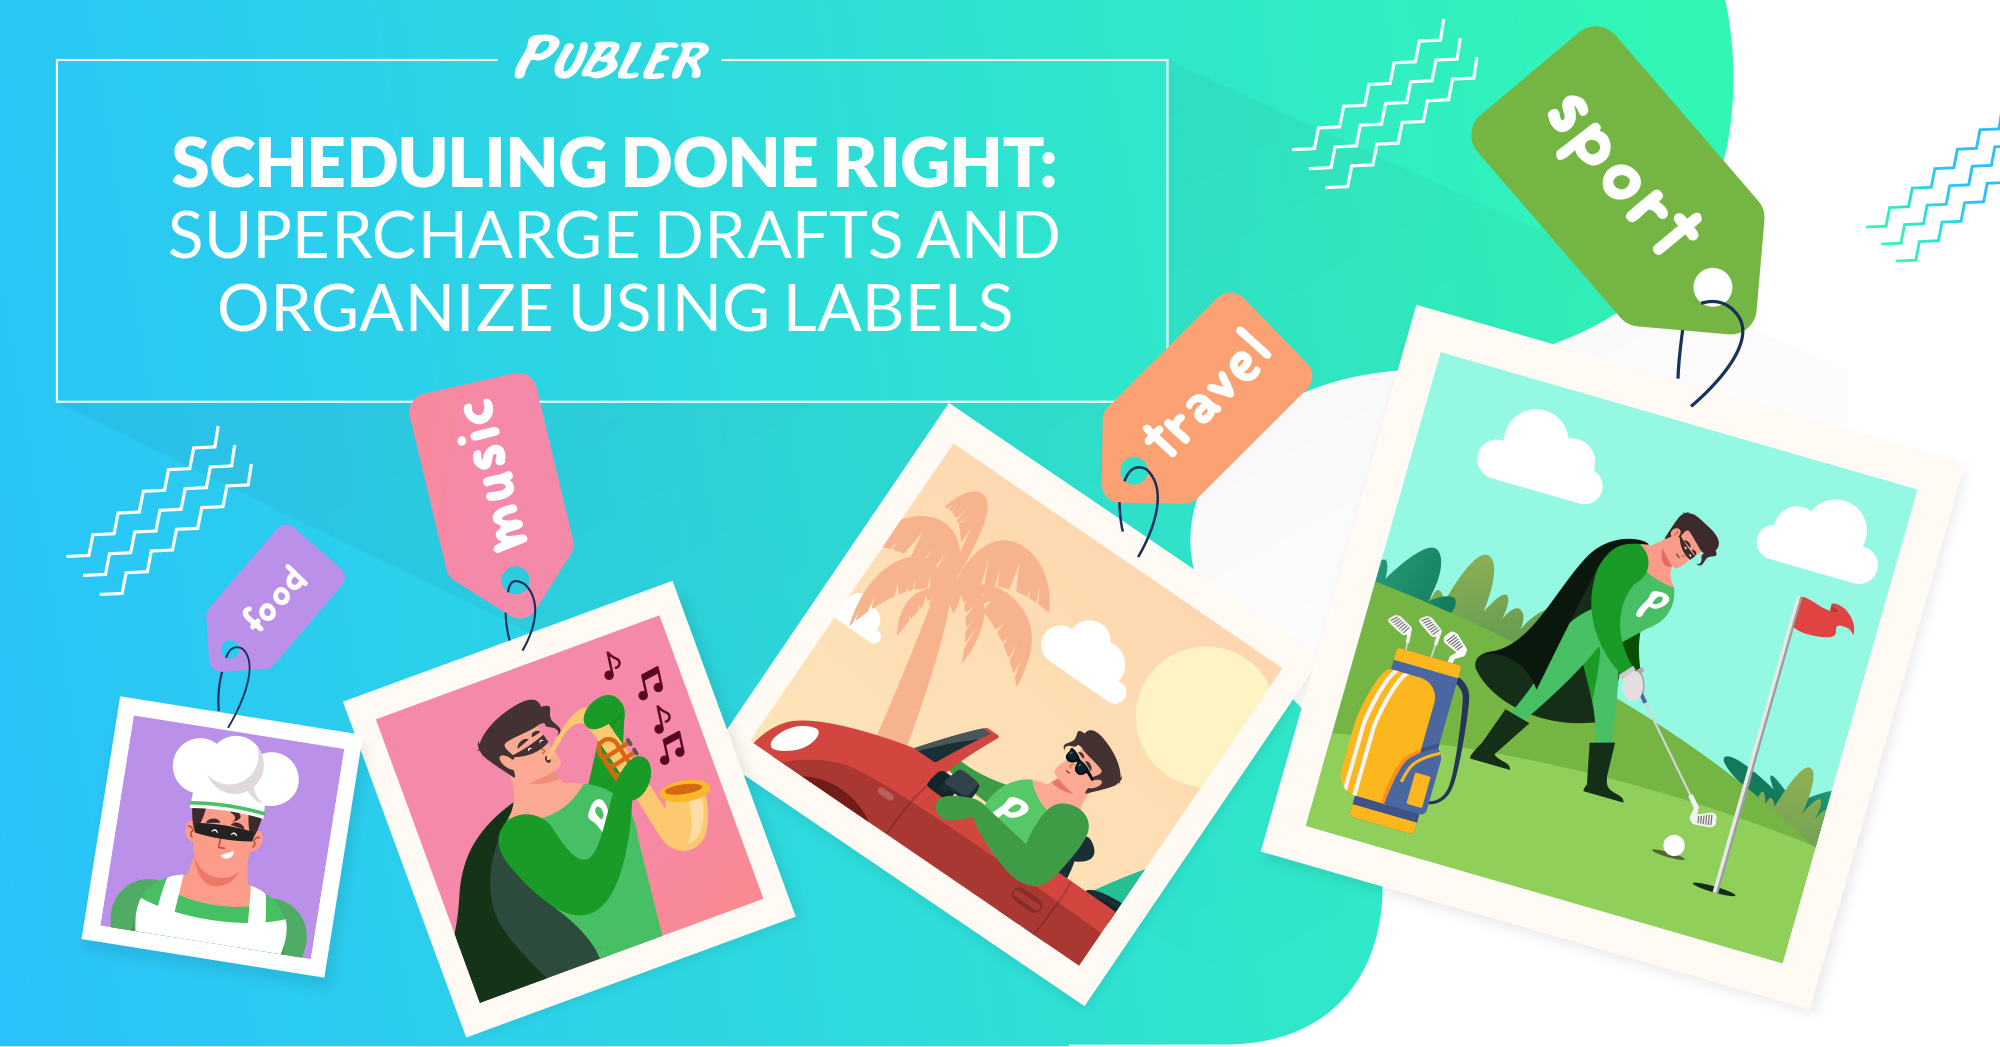 Scheduling Done Right Supercharge Drafts and Organize using Labels